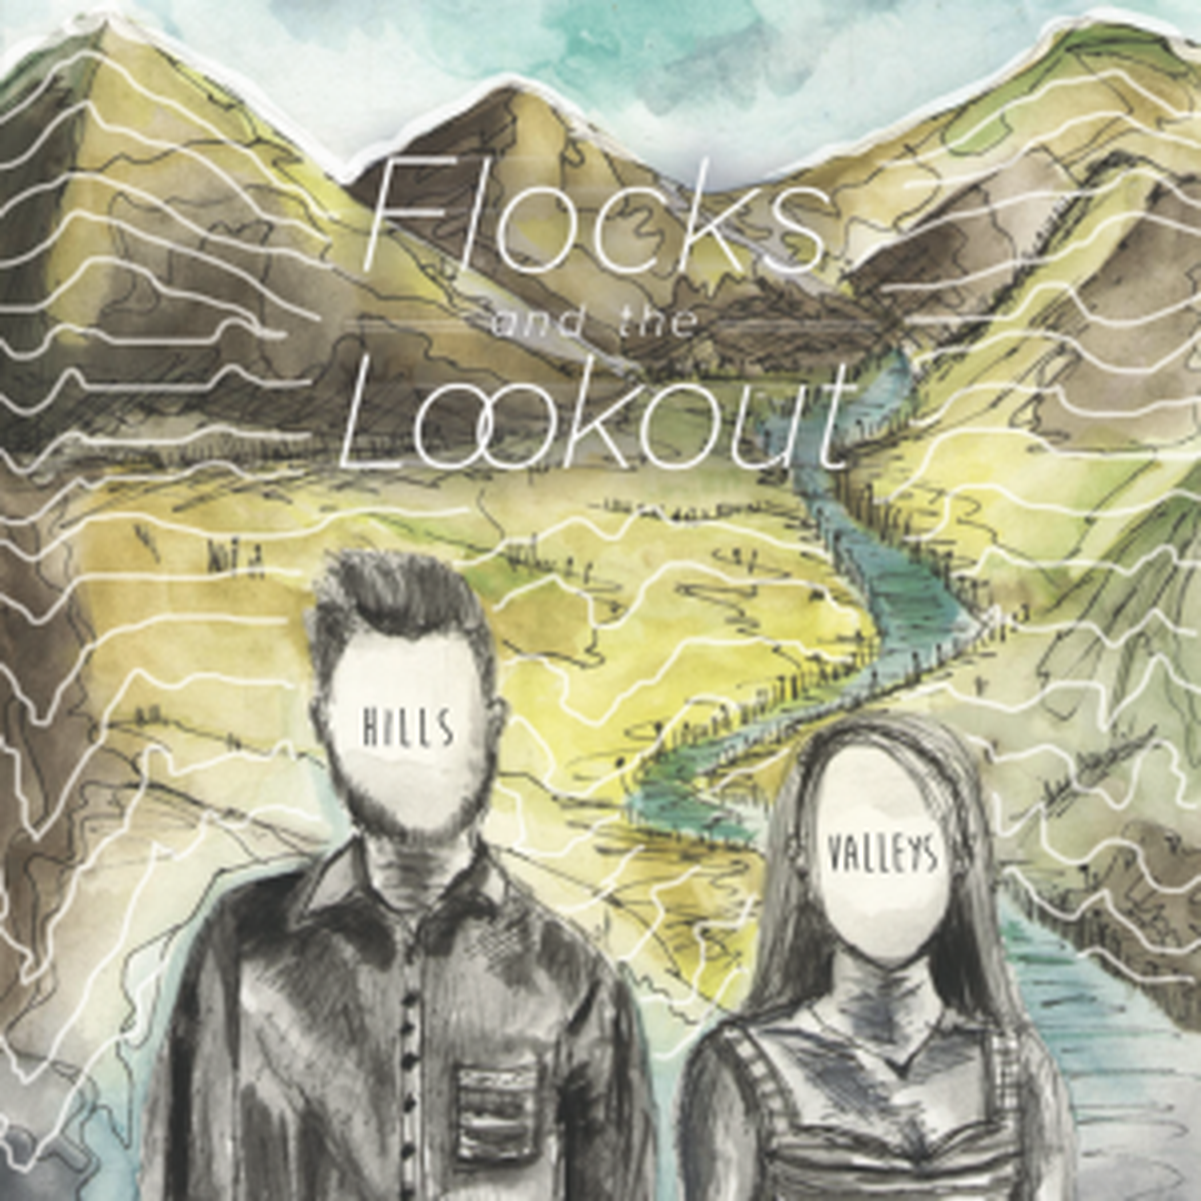 Flocks and the Lookout